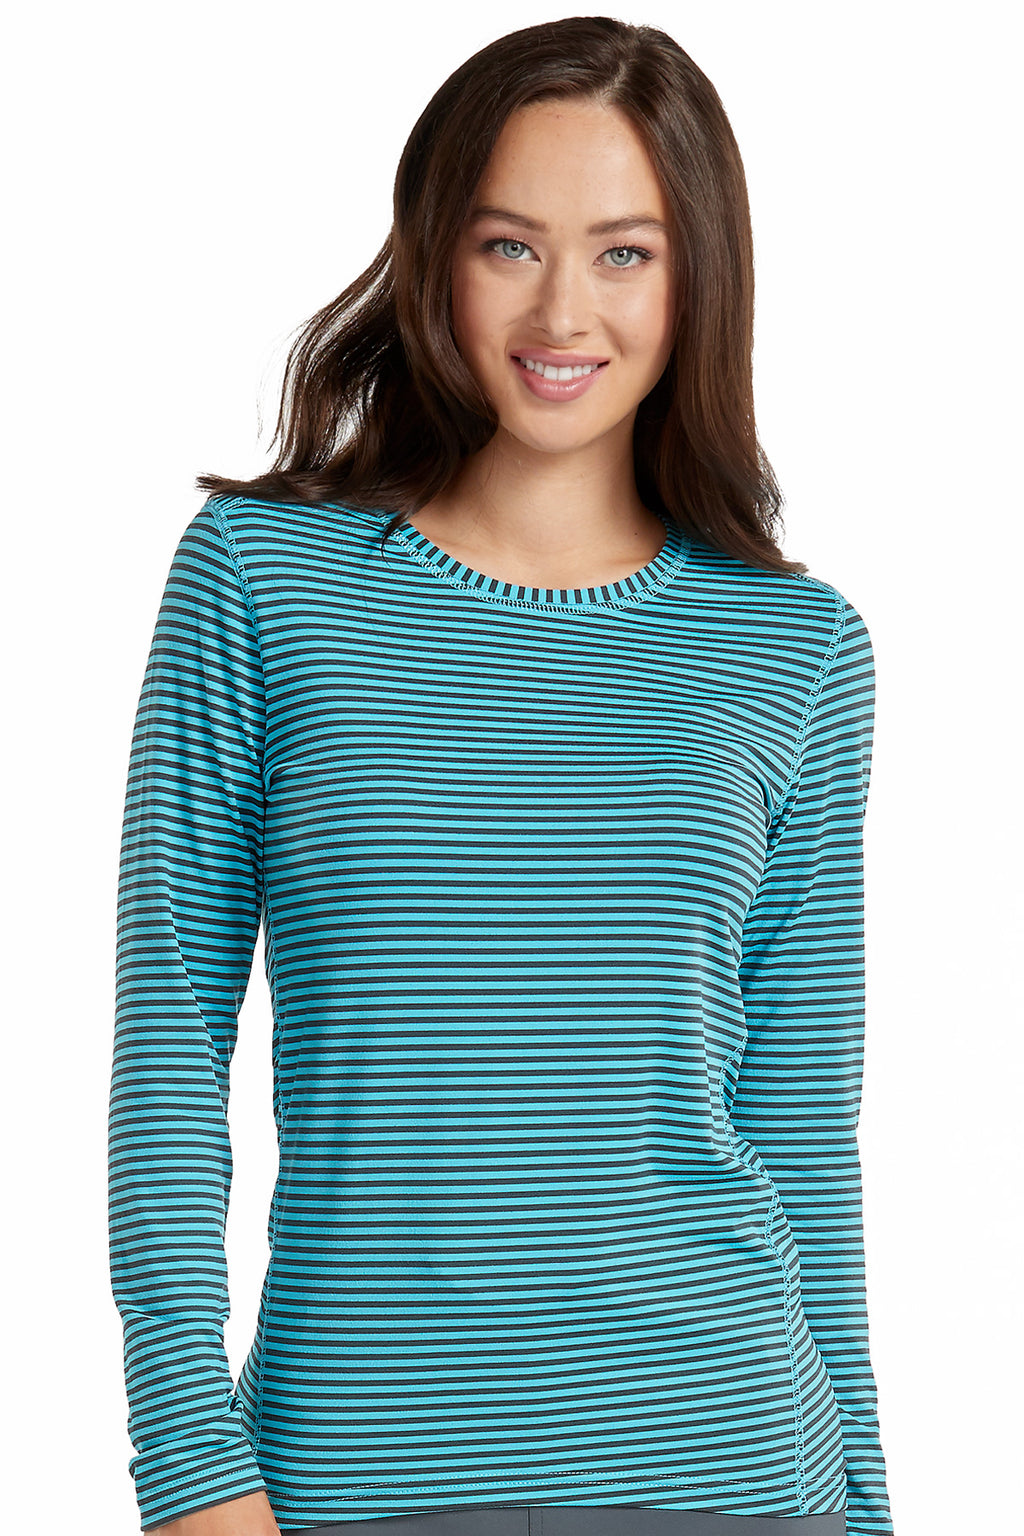 Med Couture Activate 8522 Performance Knit Stripe Tee